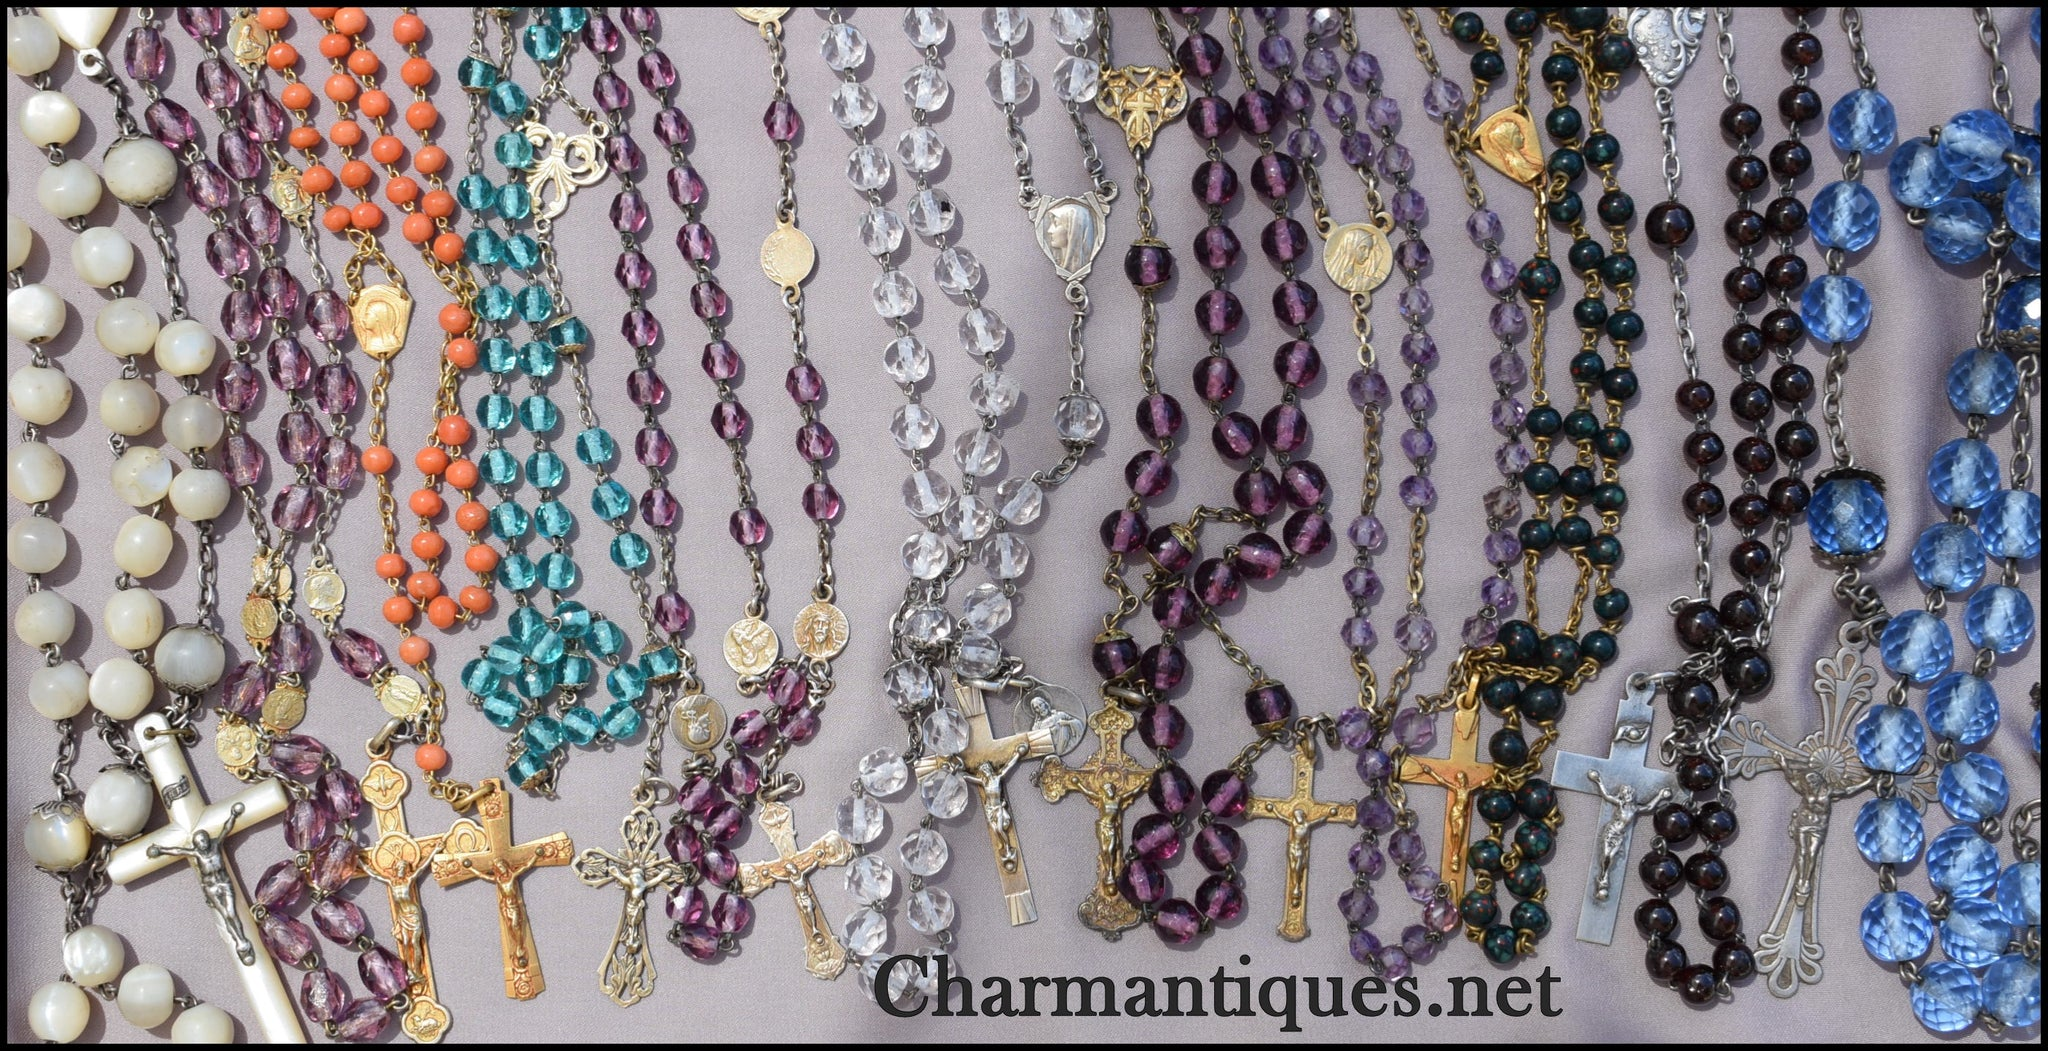 Turquoise and Silver Rosary - Charmantiques